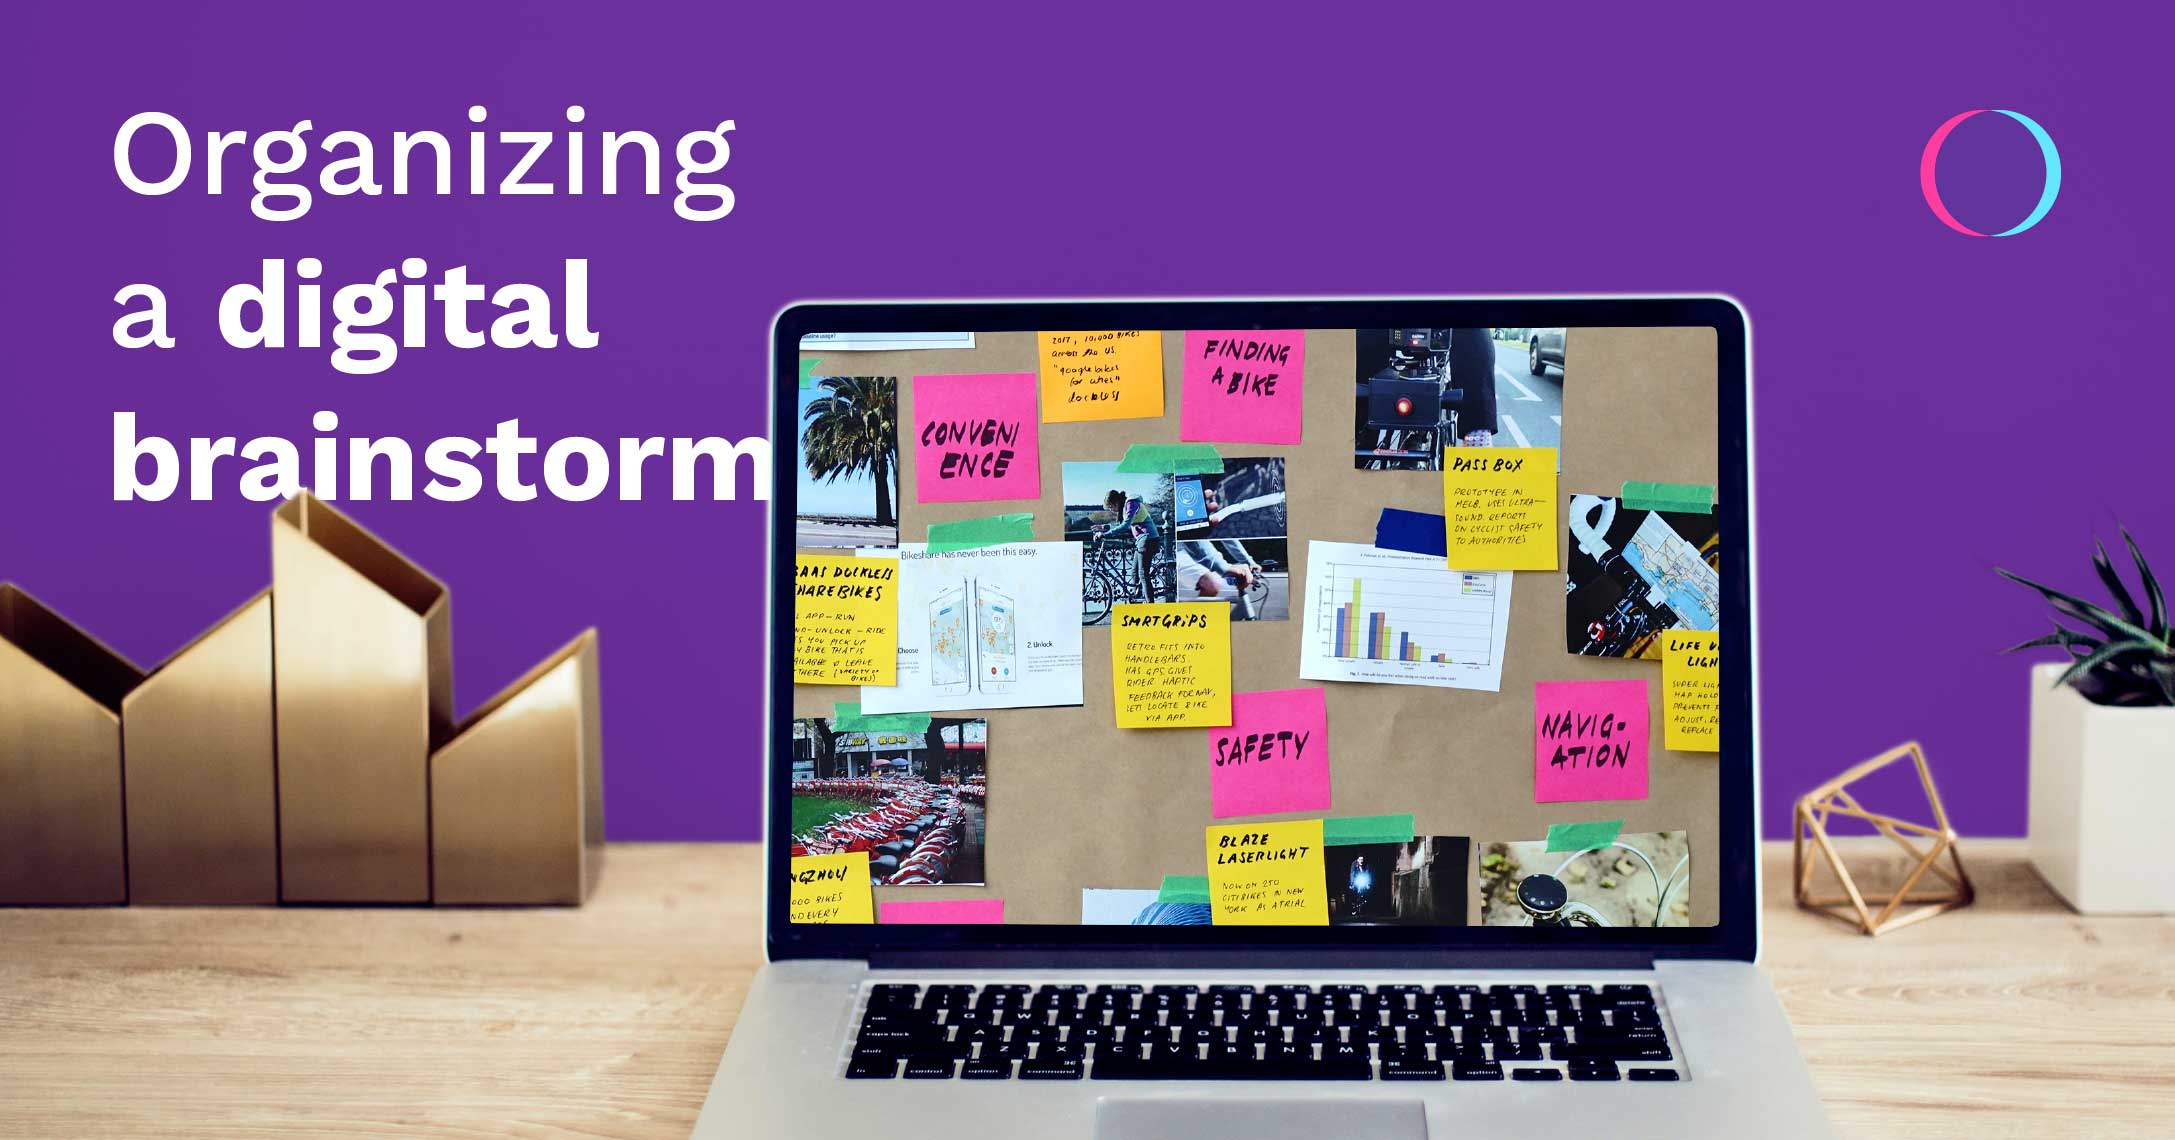 Co.Station | Organizing a digital brainstorm: how to use digital tools to their fullest